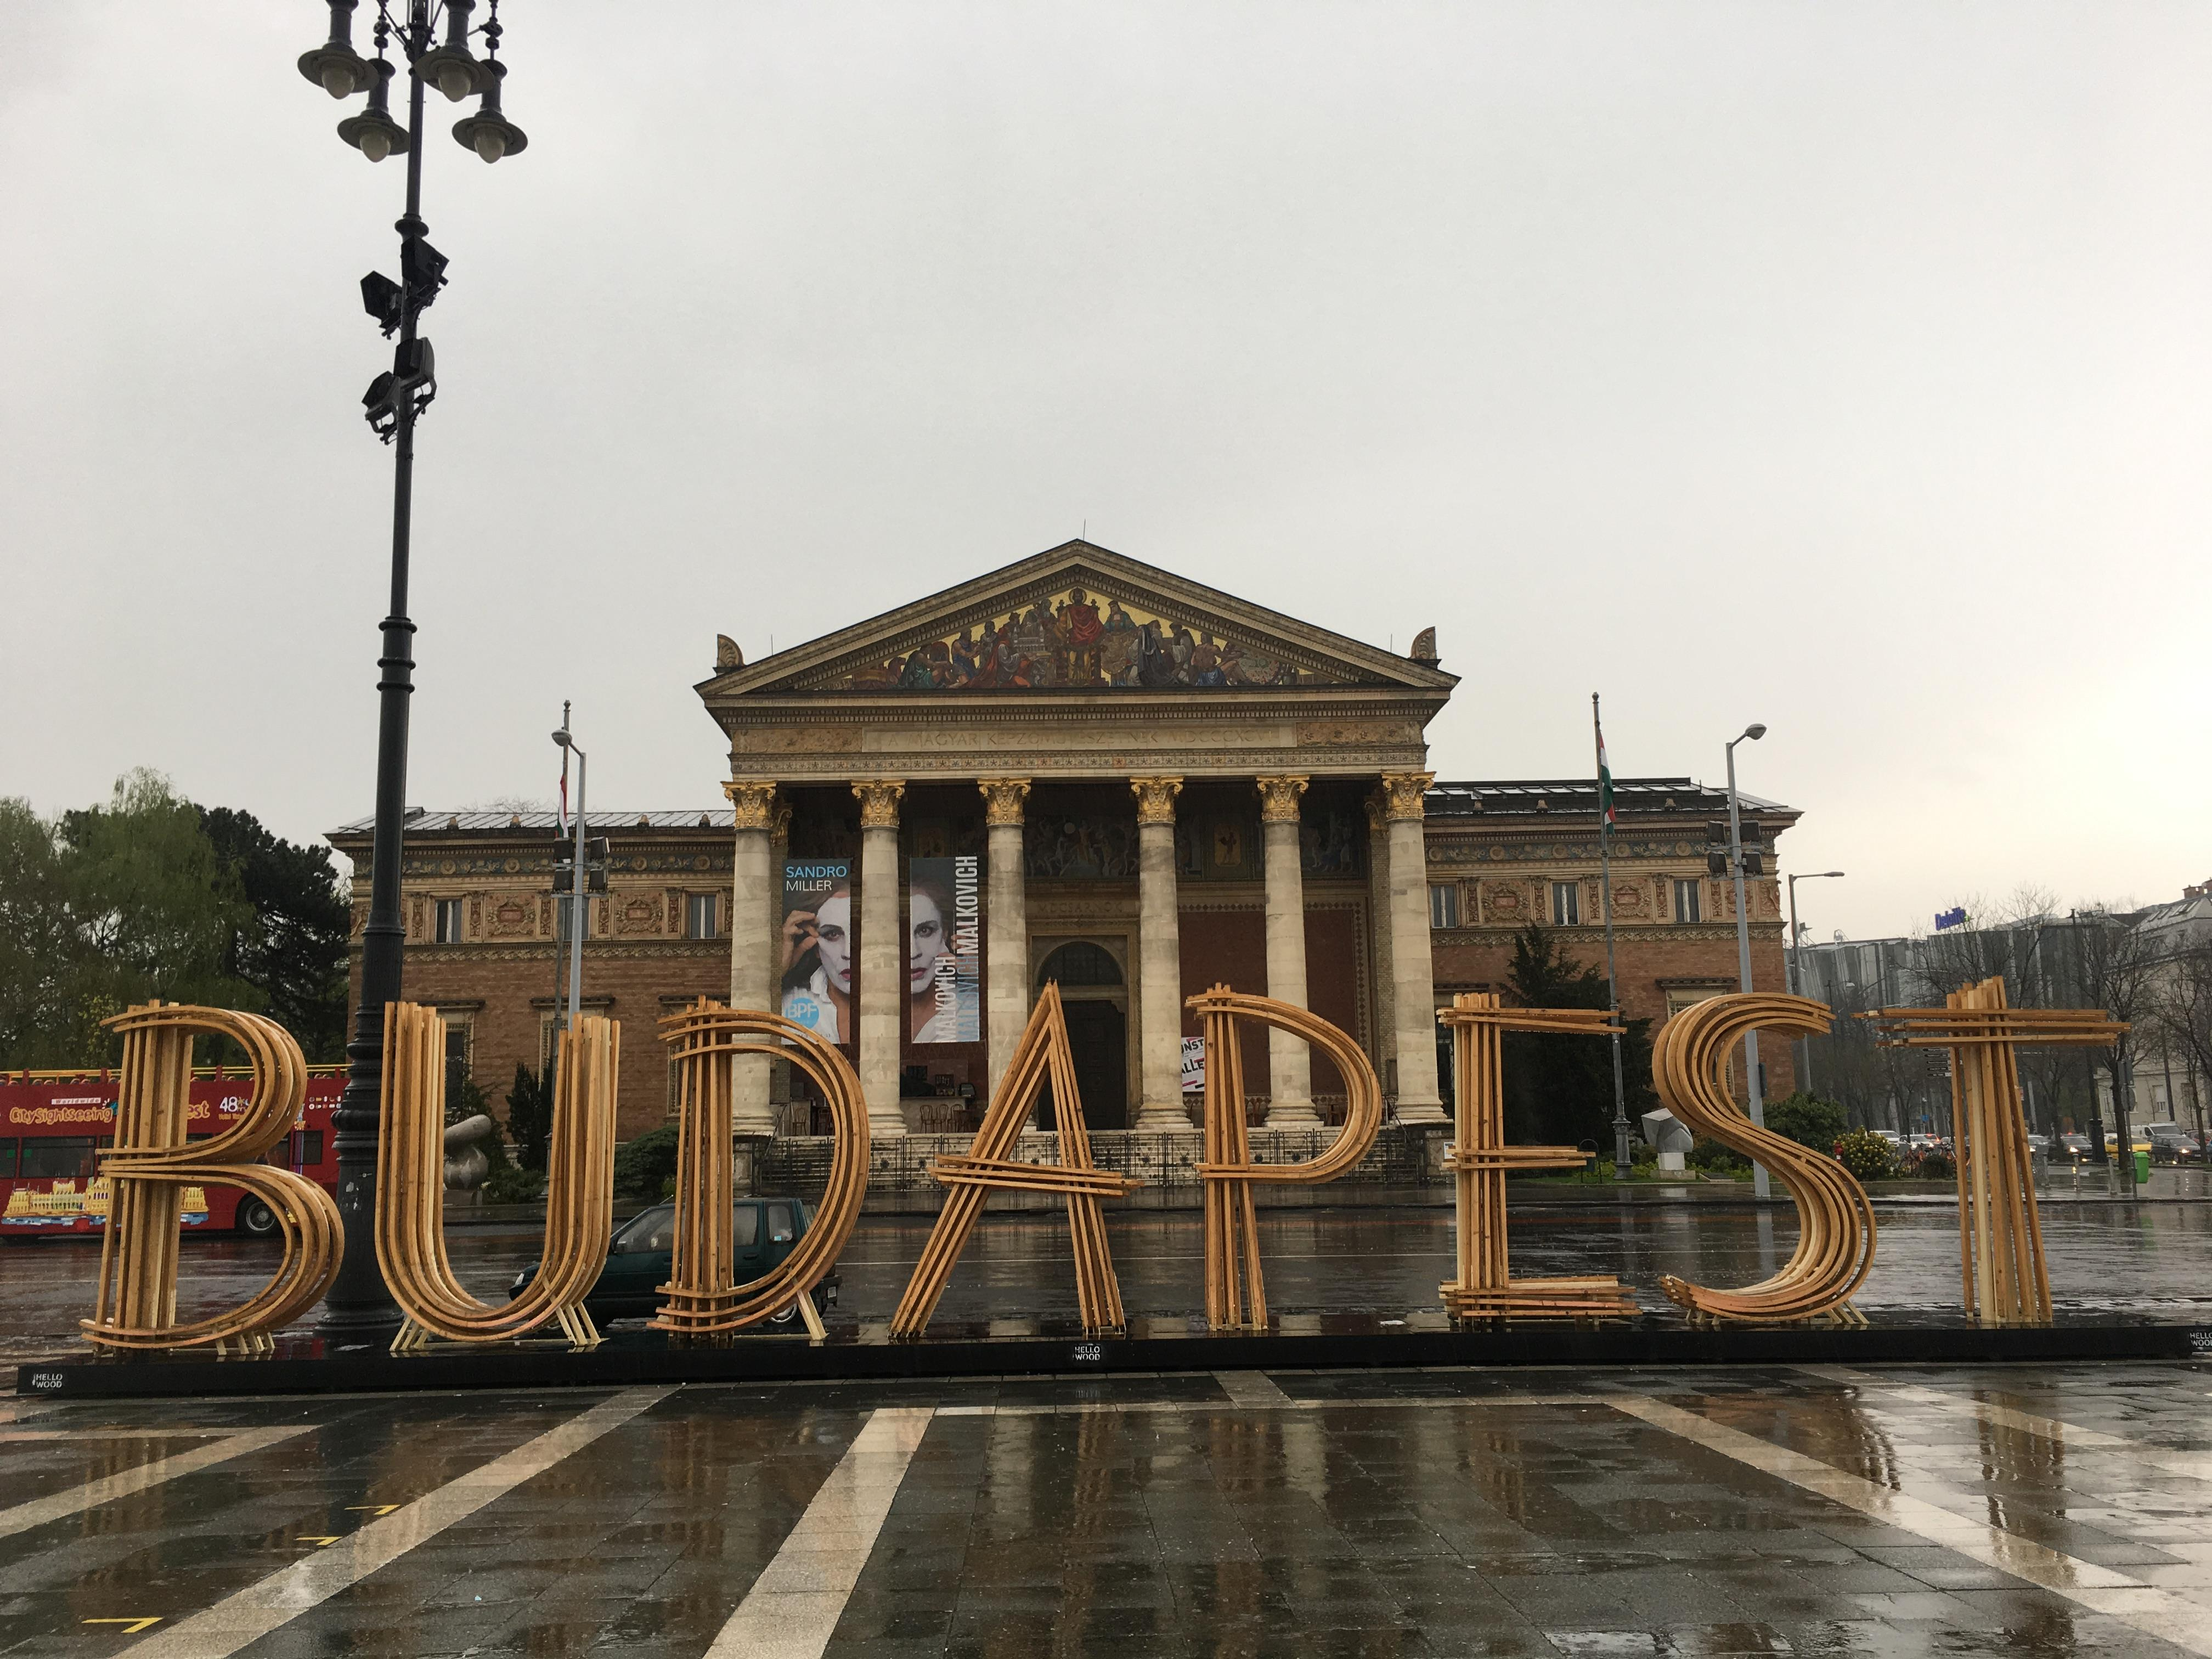 This is BUDAPEST